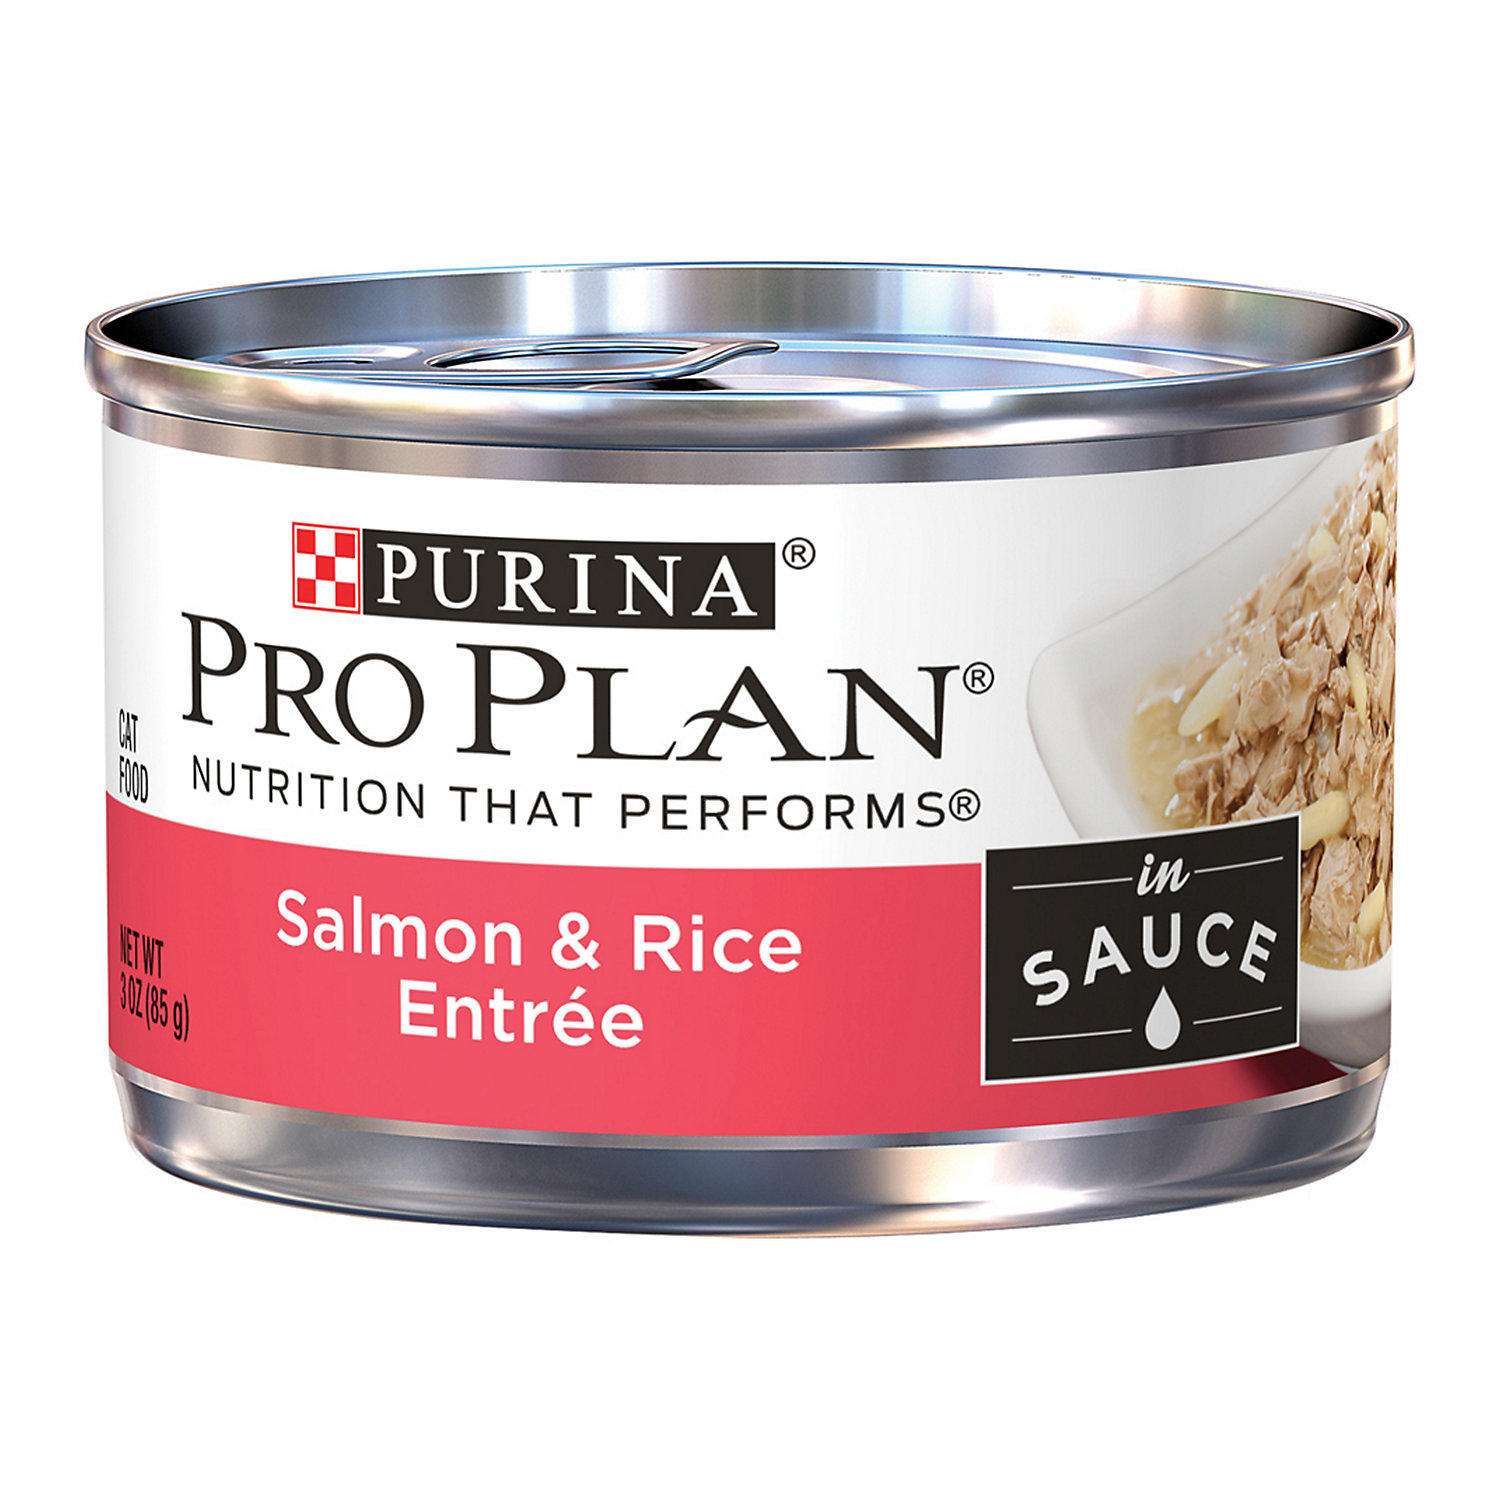 Purina Pro Plan Salmon Rice Entree In Sauce Cat Food 3 Oz. Can